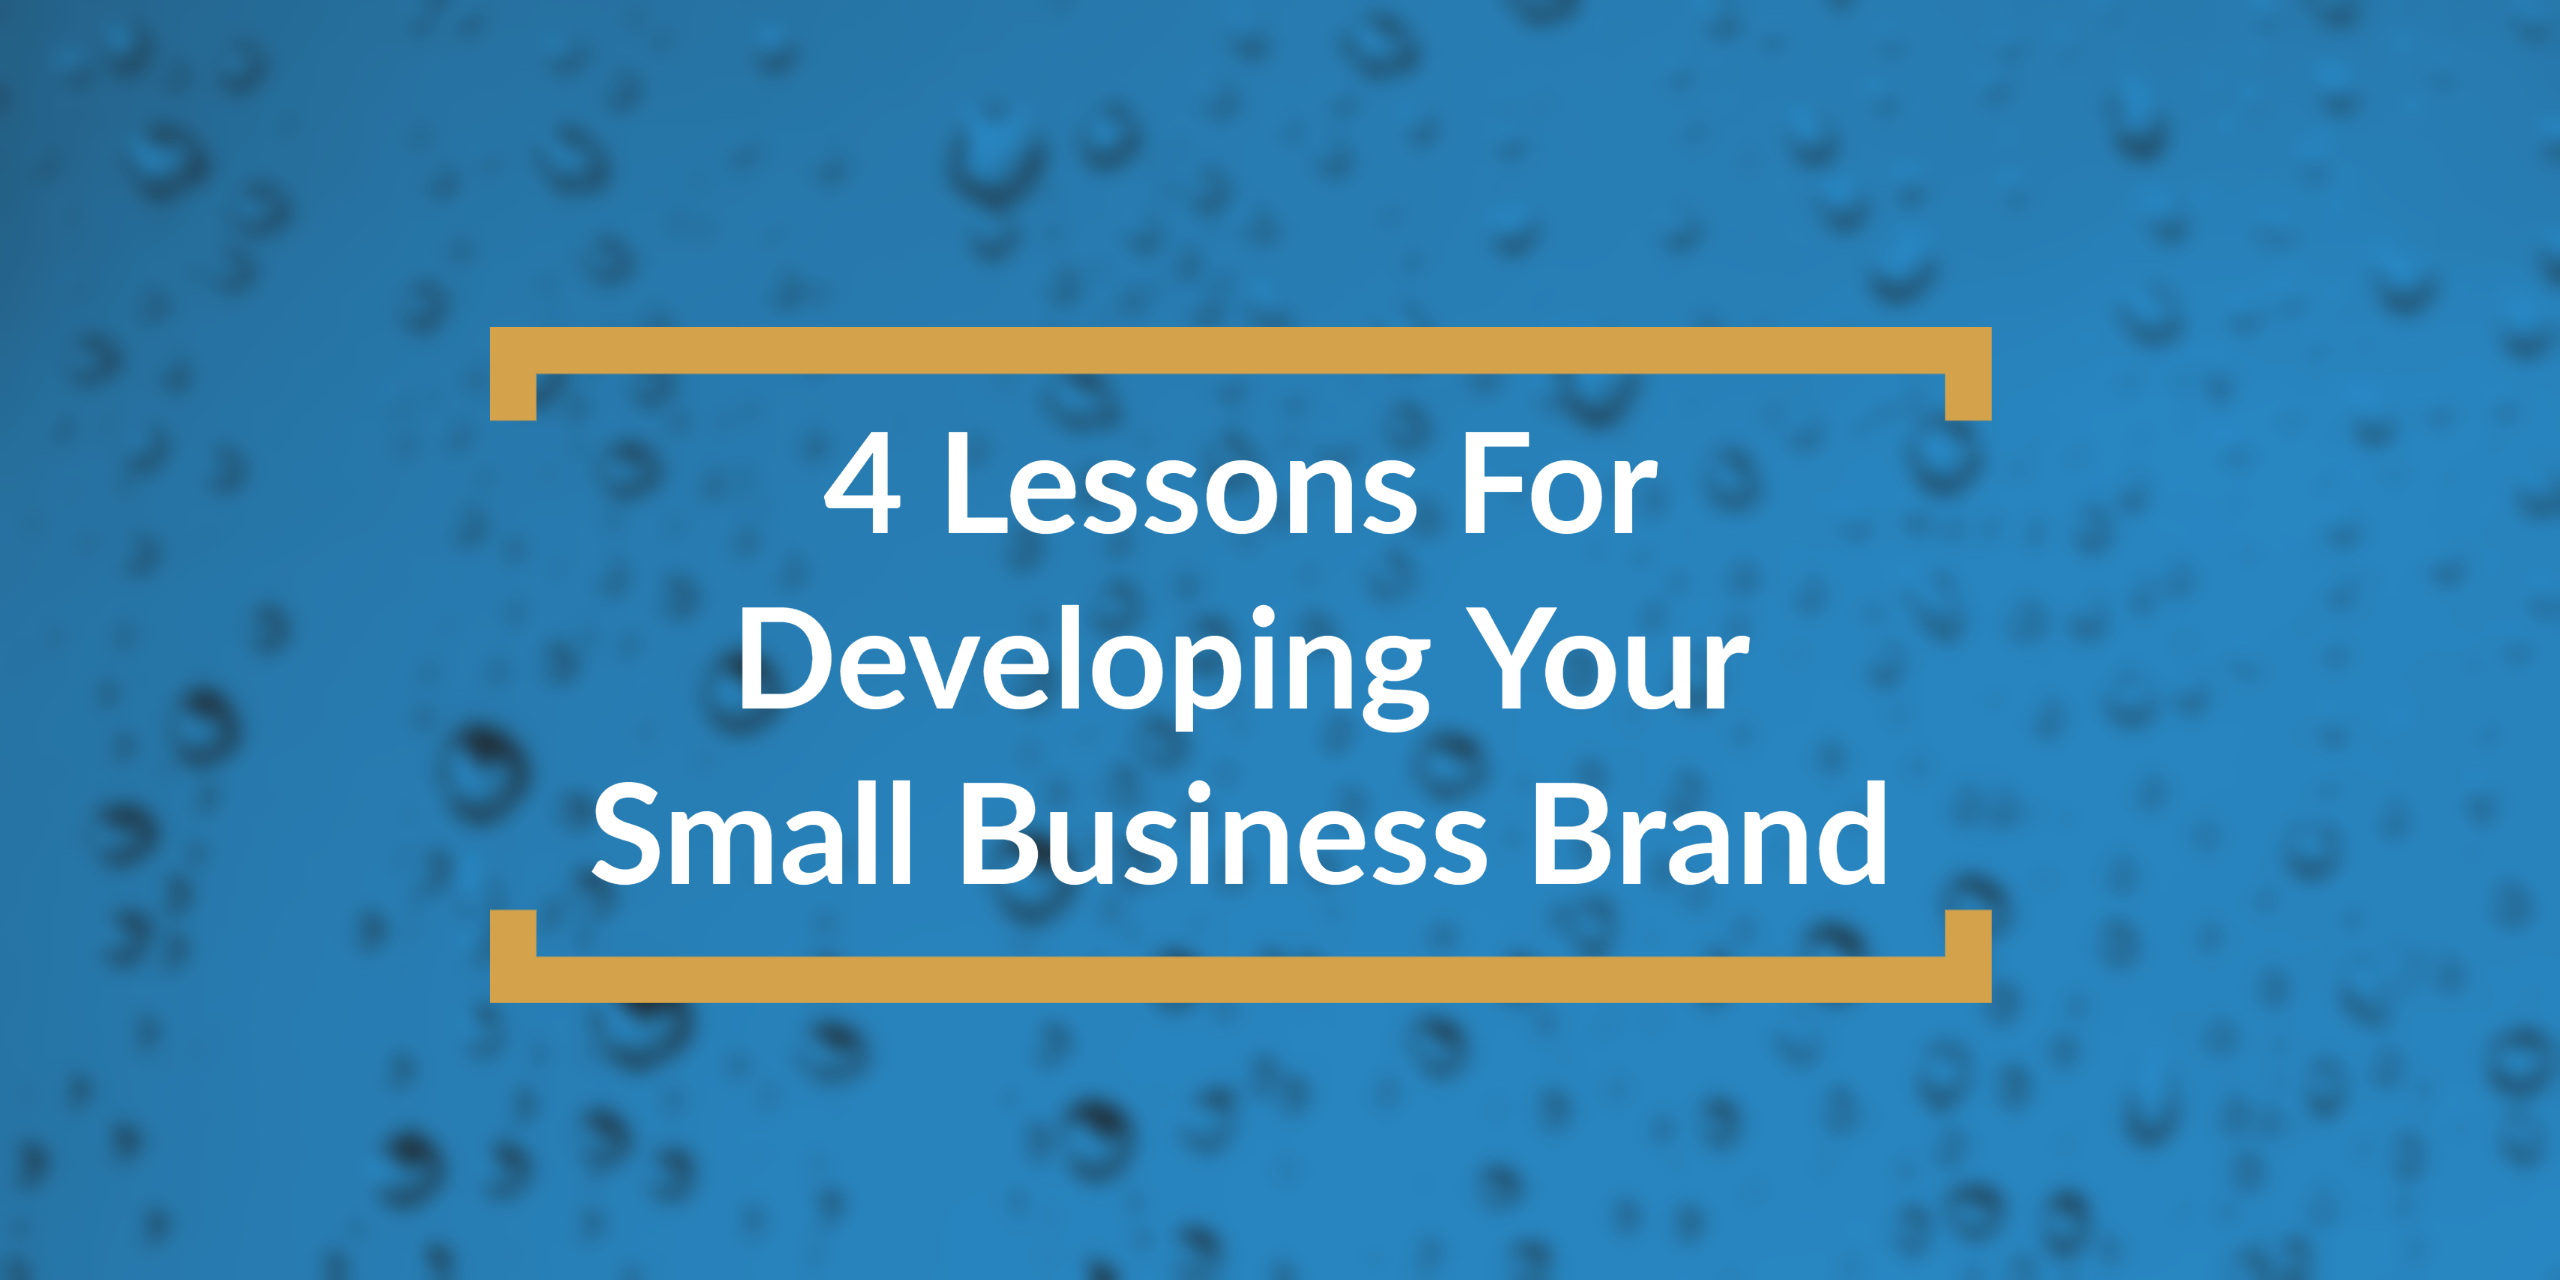 4 lessons for small business branding - title box